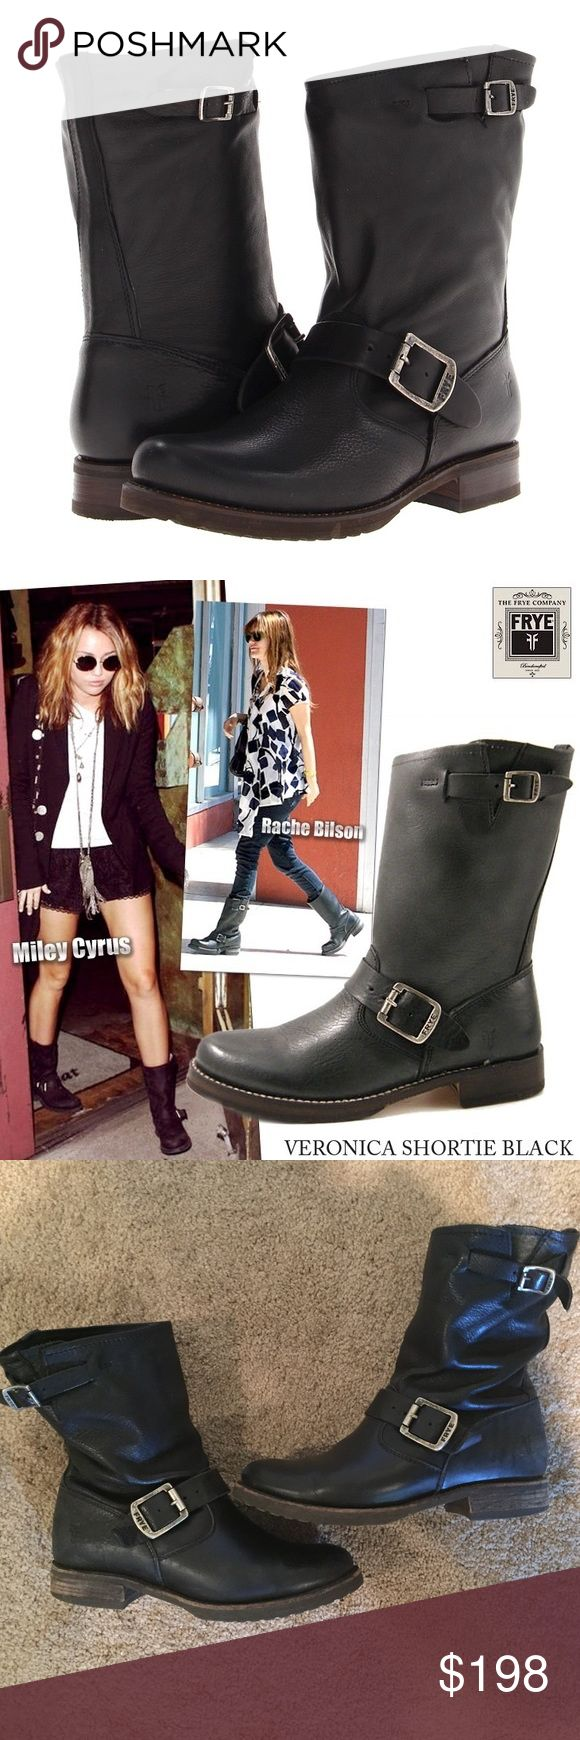 Frye Veronica Short Boot Amazing boots. Only worn a handful of times. Frye Shoes